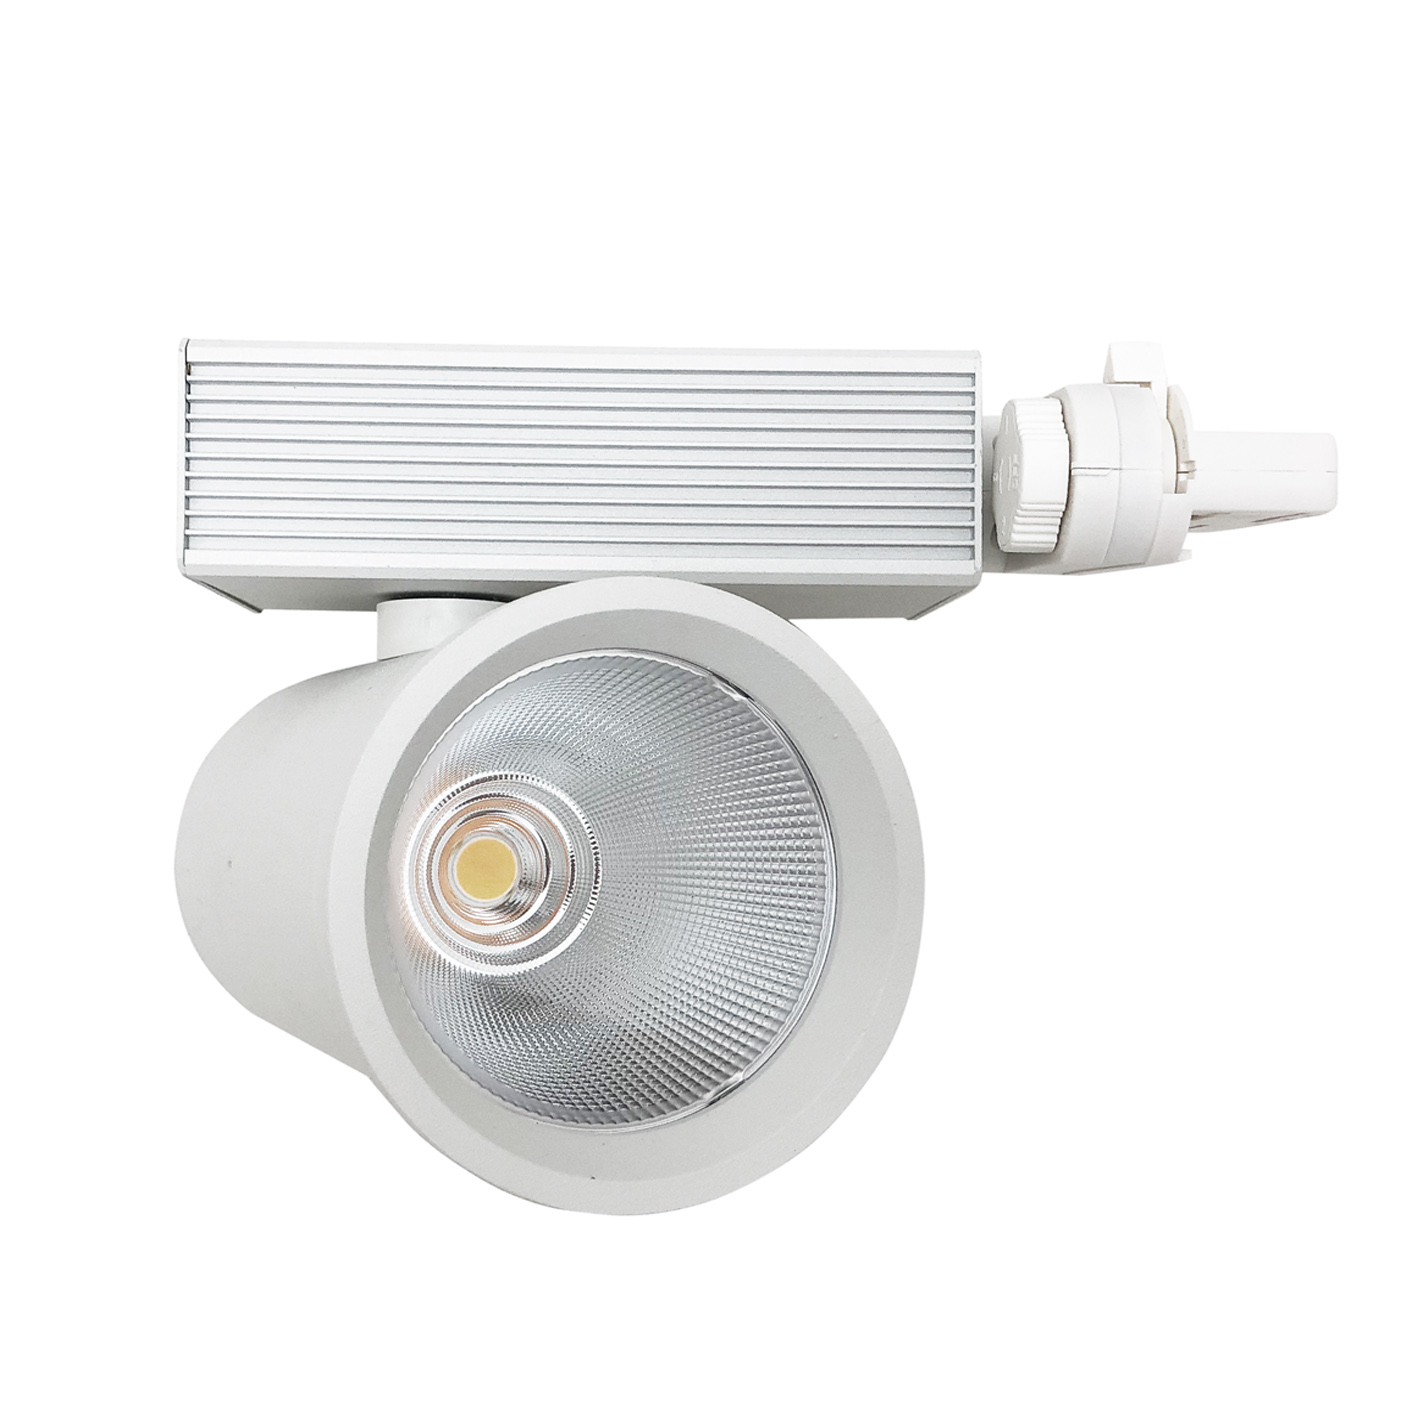 Faretto LED a binario 35W Trifase Cob Faro Led Binario FB-8-35W